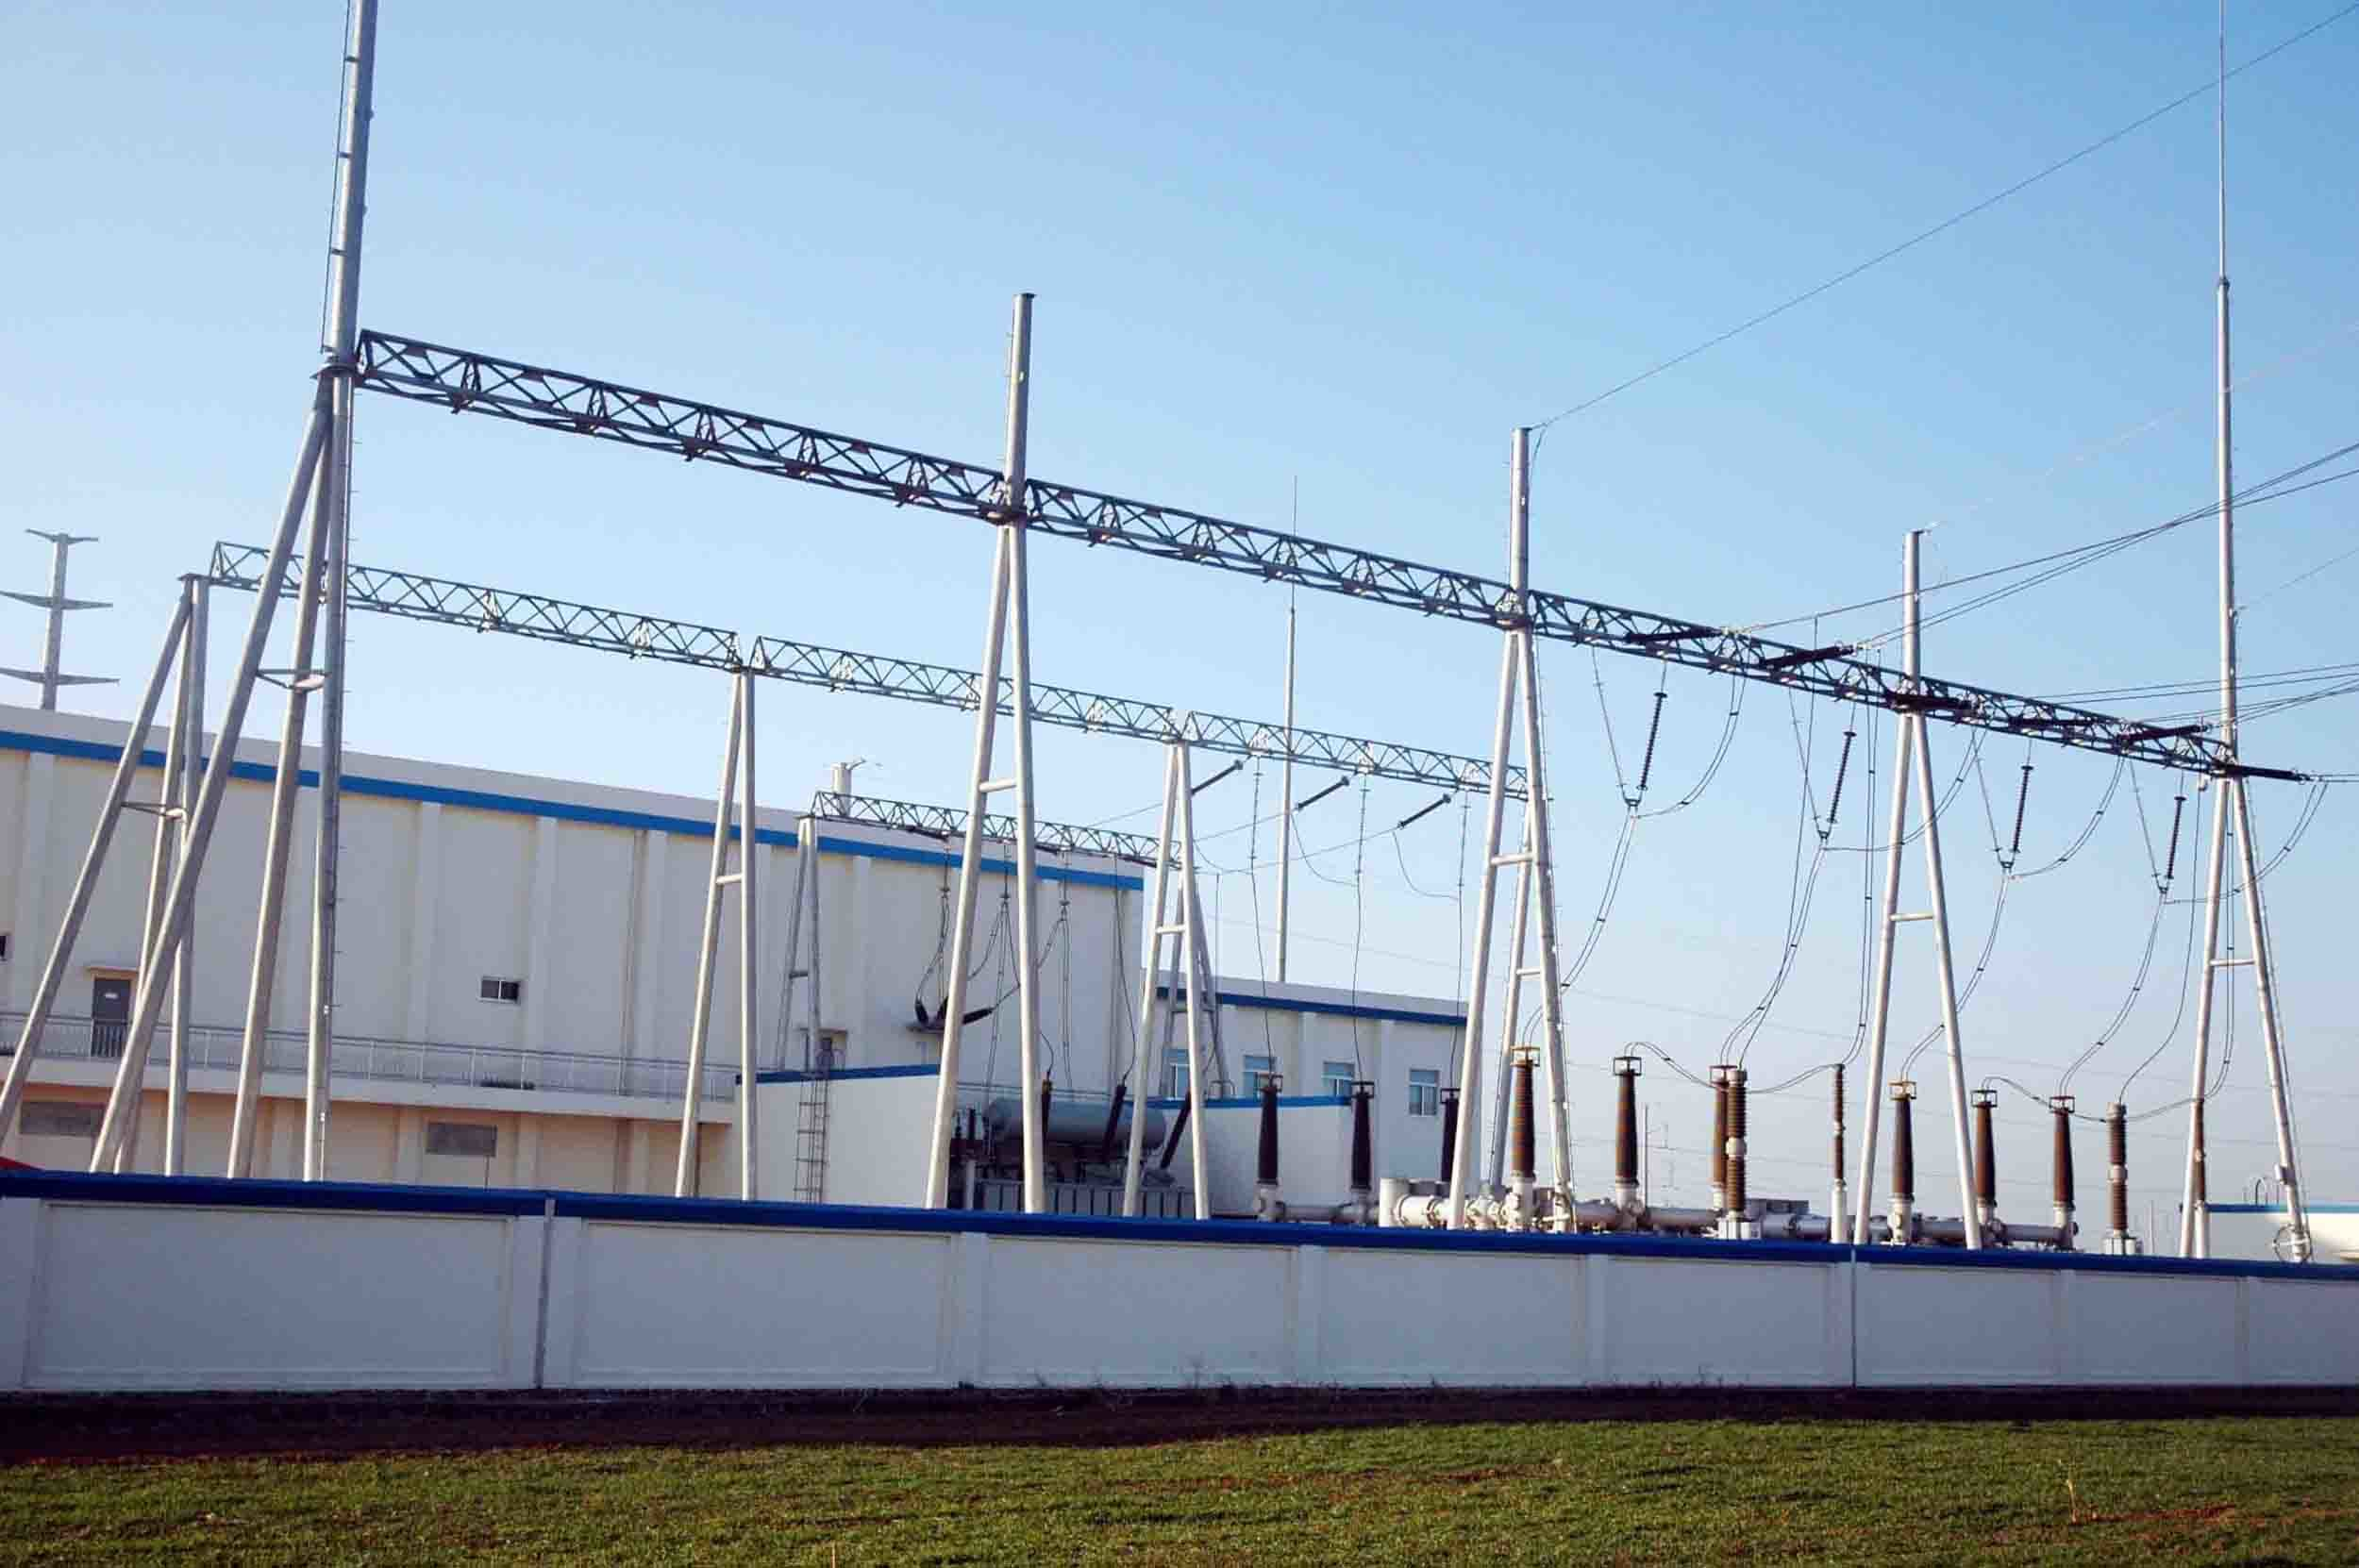 220kv substation What is the rating of ht substation and lt substation allinterviewcom then converted in ac afterwords ac is stepen down to 220kv to.